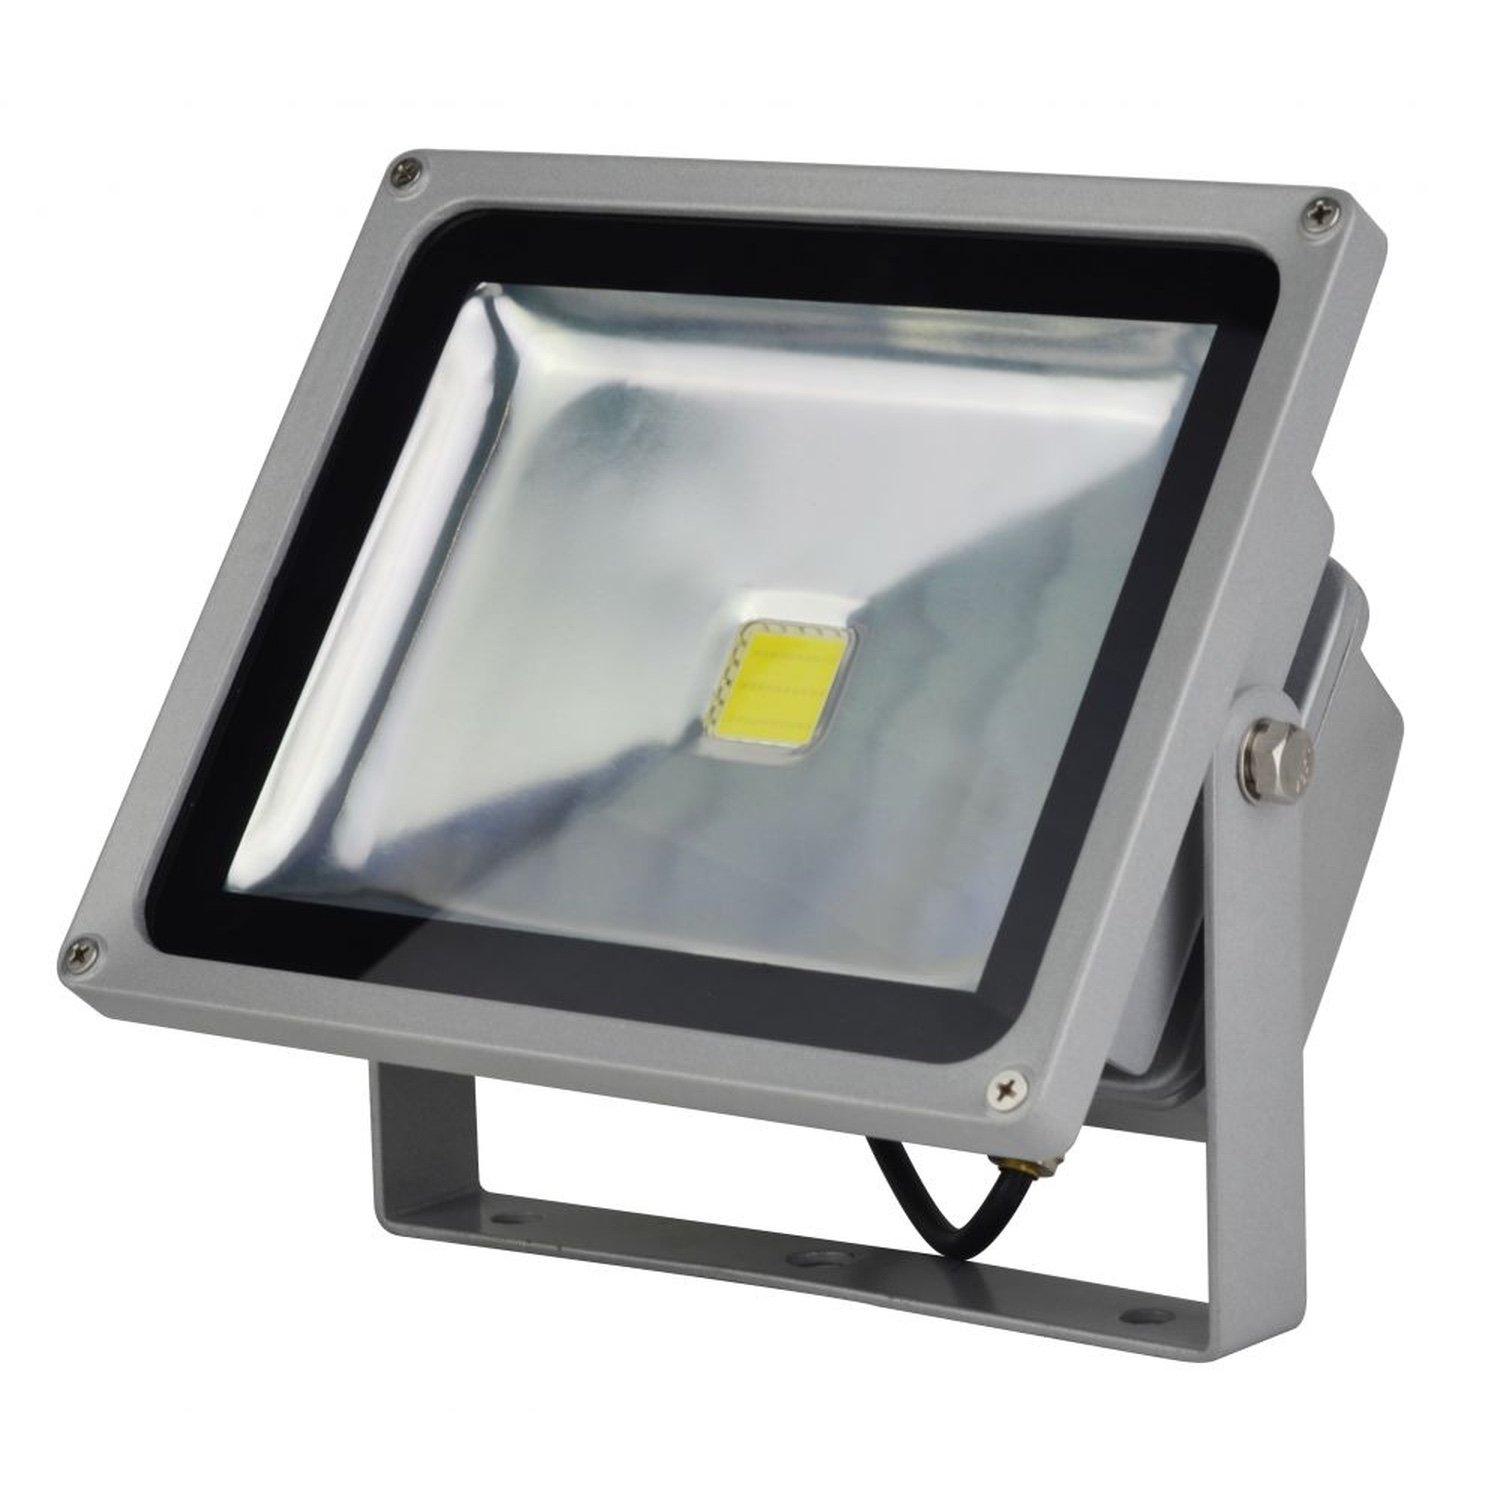 LED Spotlight Spotlight 50W 3000K Warm Light